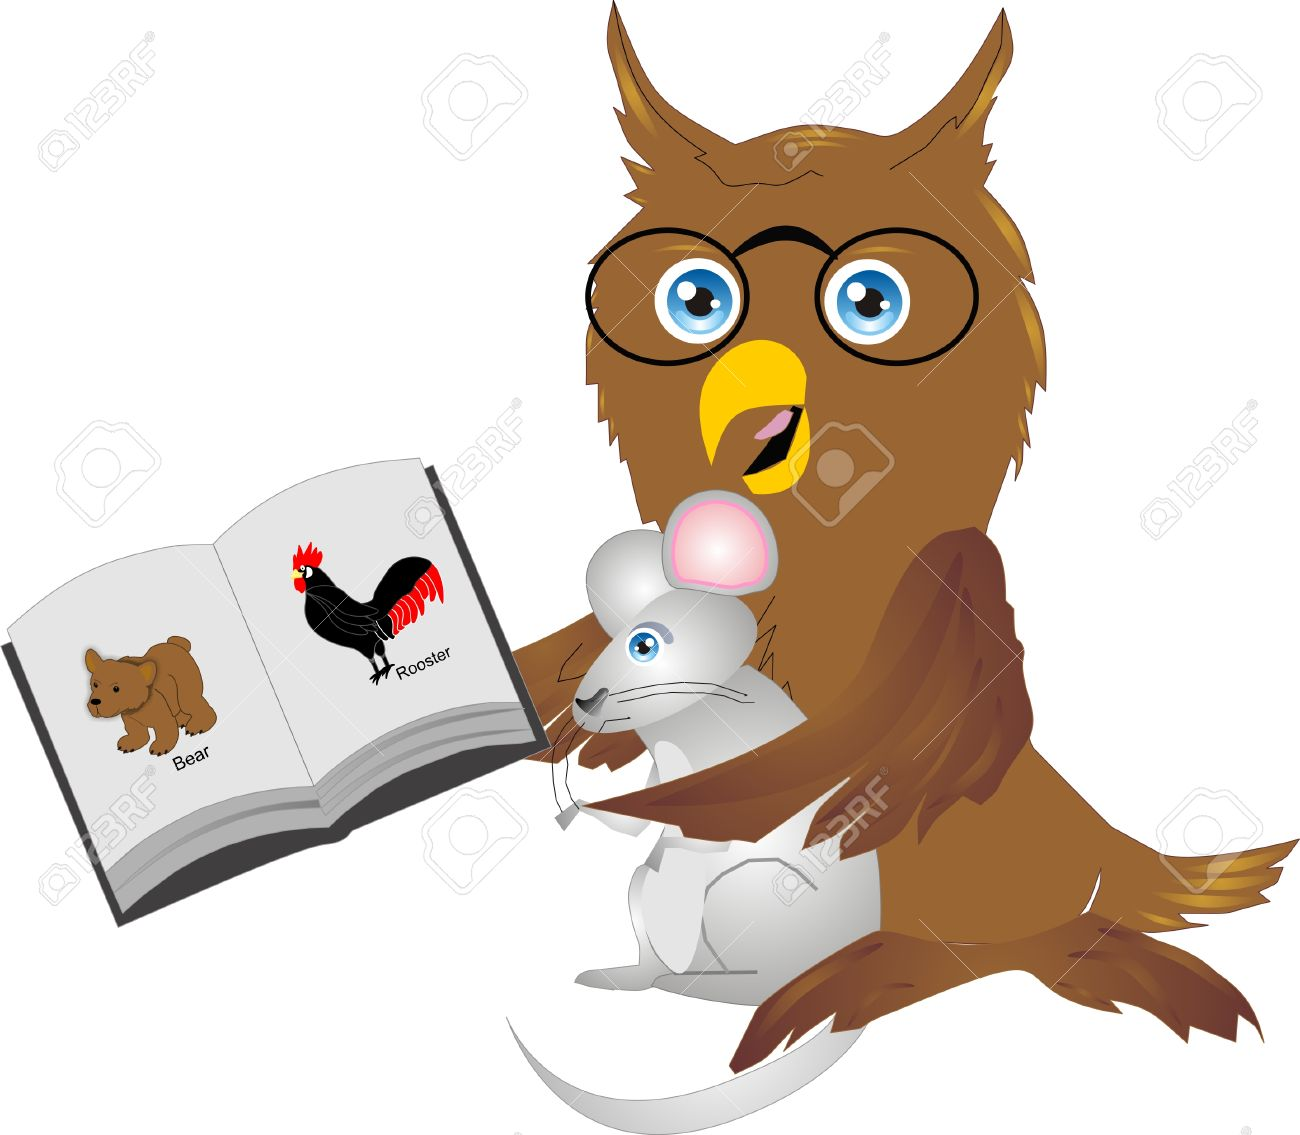 owl, bird, predator, carnivore, feathers, night, horned, glasses, reading,  mouse, mole, food, rooster, cock, farm, animal, mammals, bear, cub, brown,  book, ...